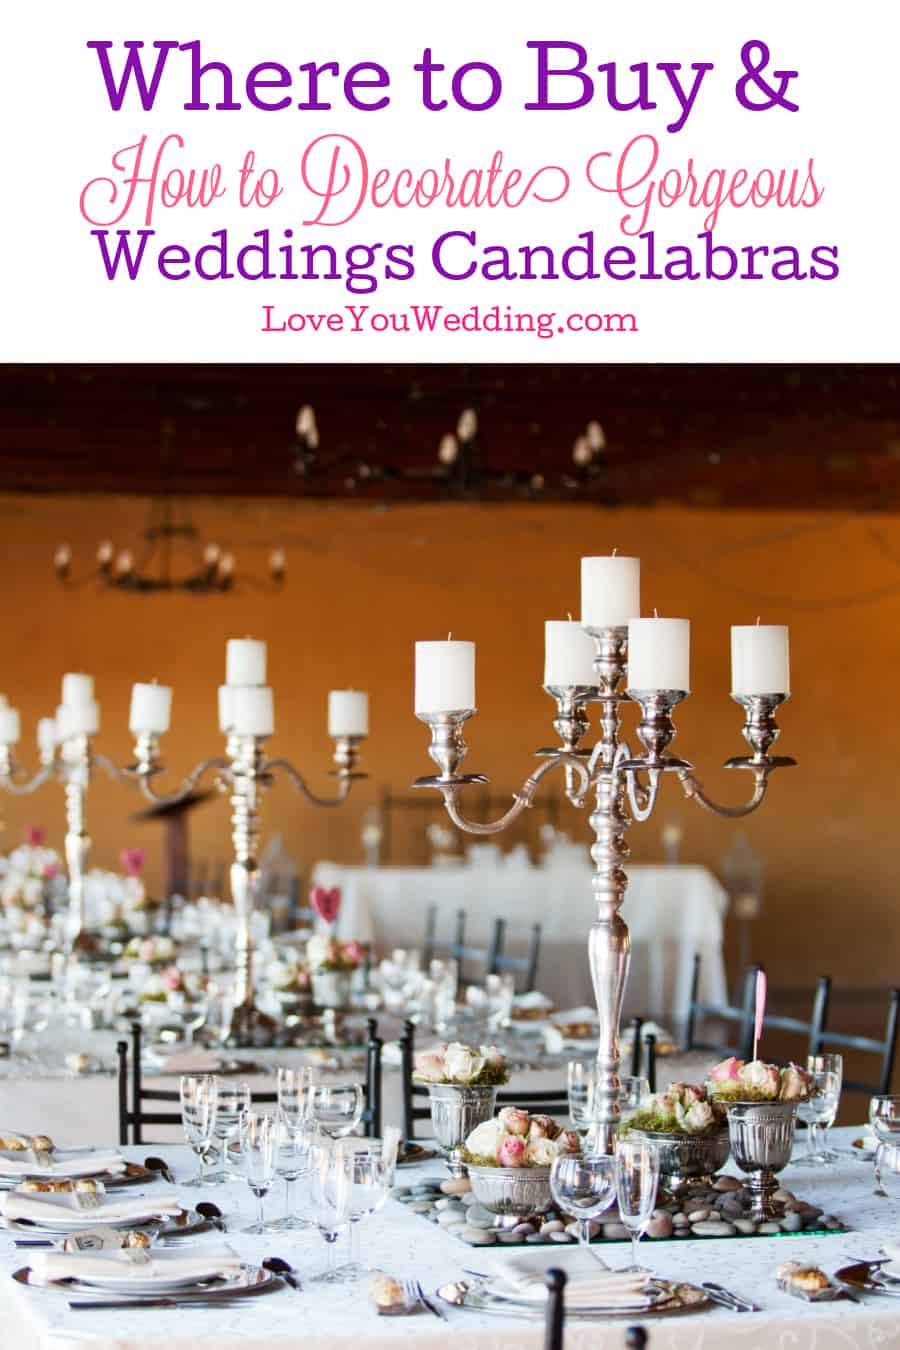 Using candelabras adds such an elegant touch to your wedding. Check out our guide to buying and styling them!